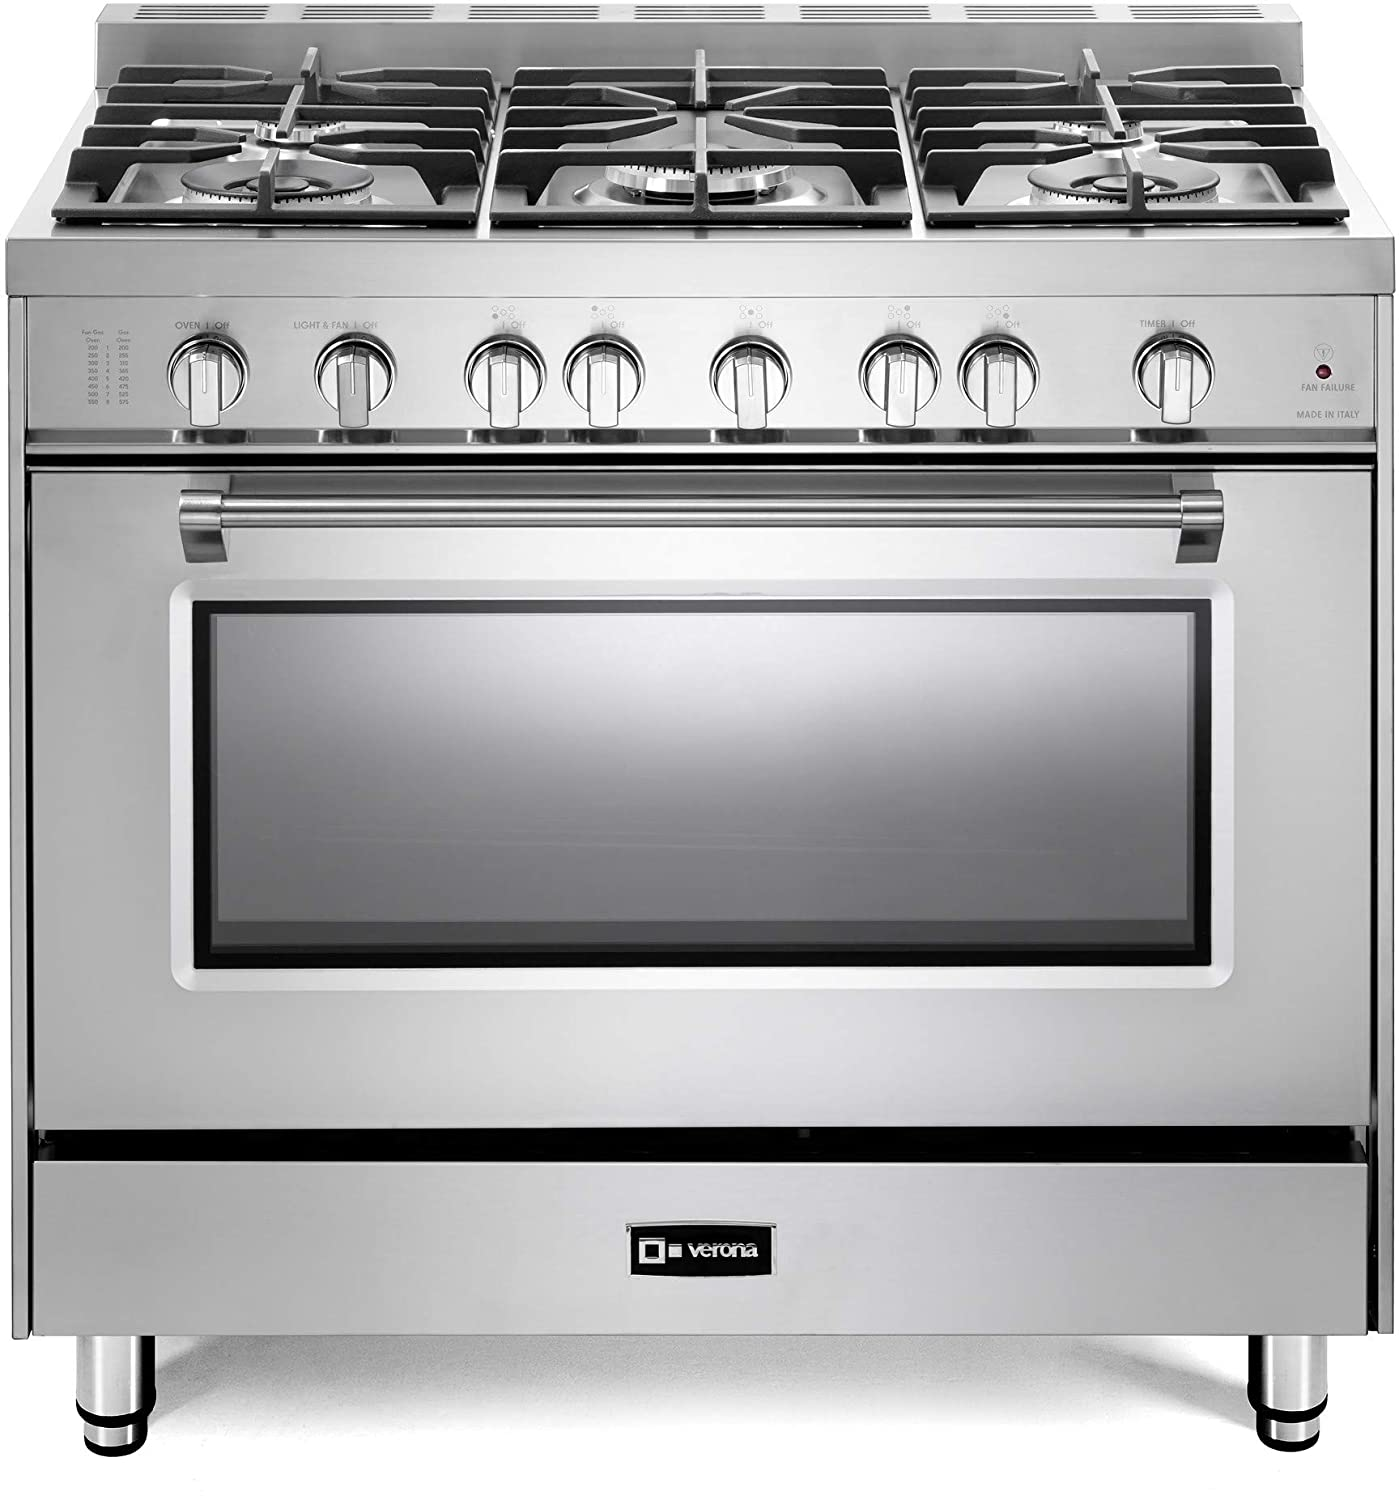 Verona Prestige Series VPFSGG365SS 36inch All Gas Range Convection Oven 5 Sealed Burners Stainless Steel Storage Drawer